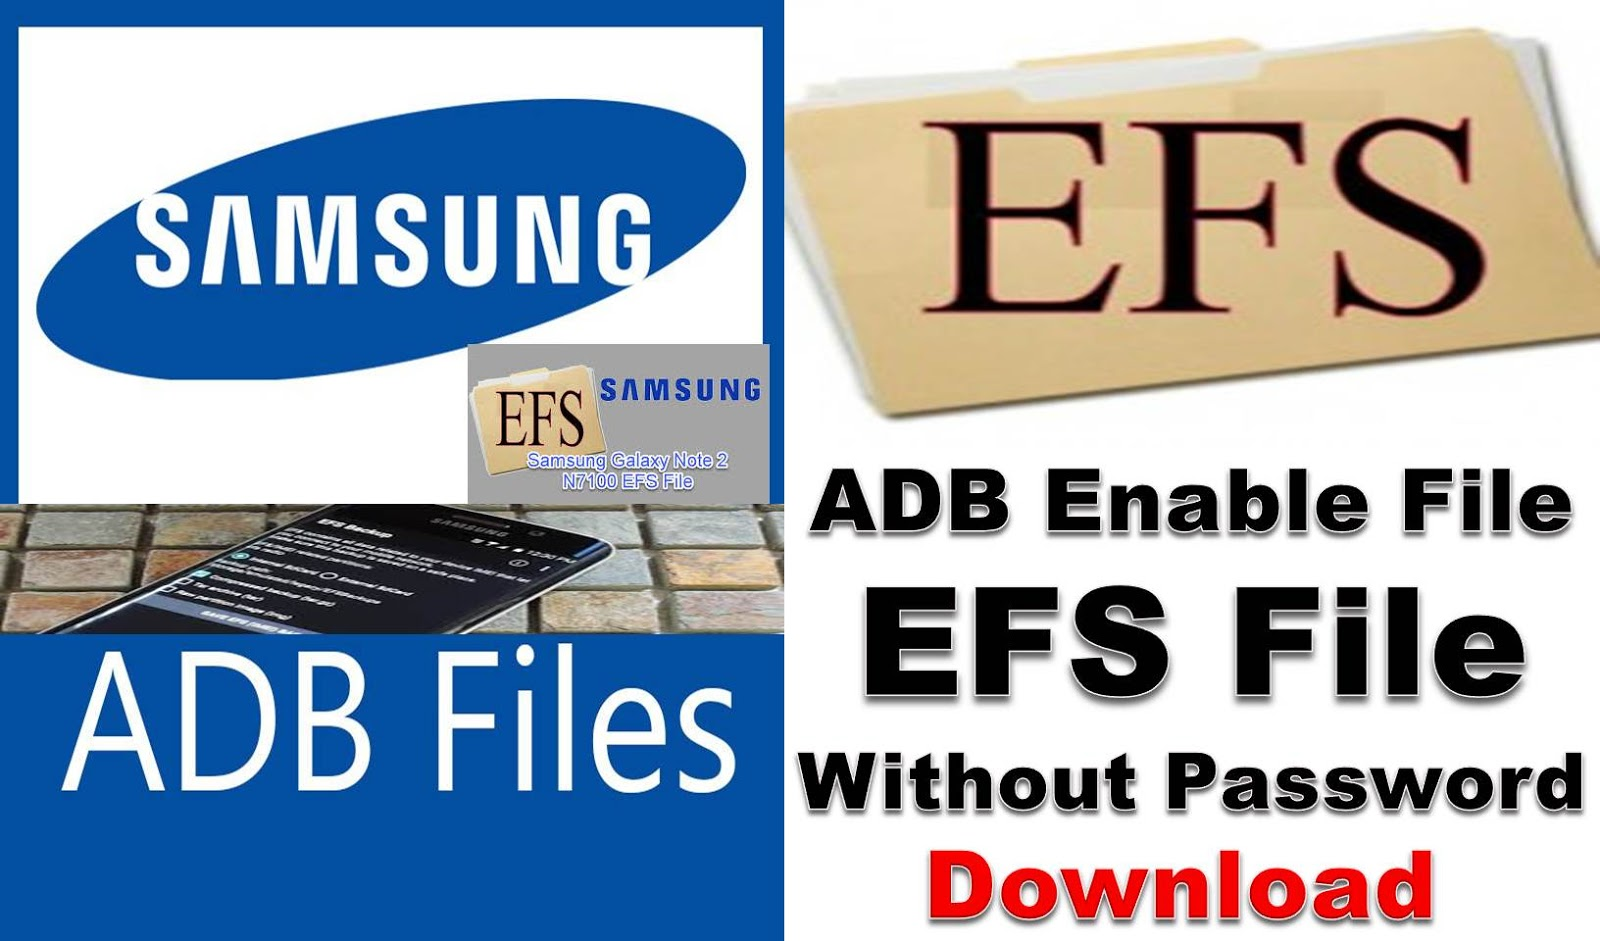 All Samsung ADB Enable File & EFS File 100% Tested Without Password